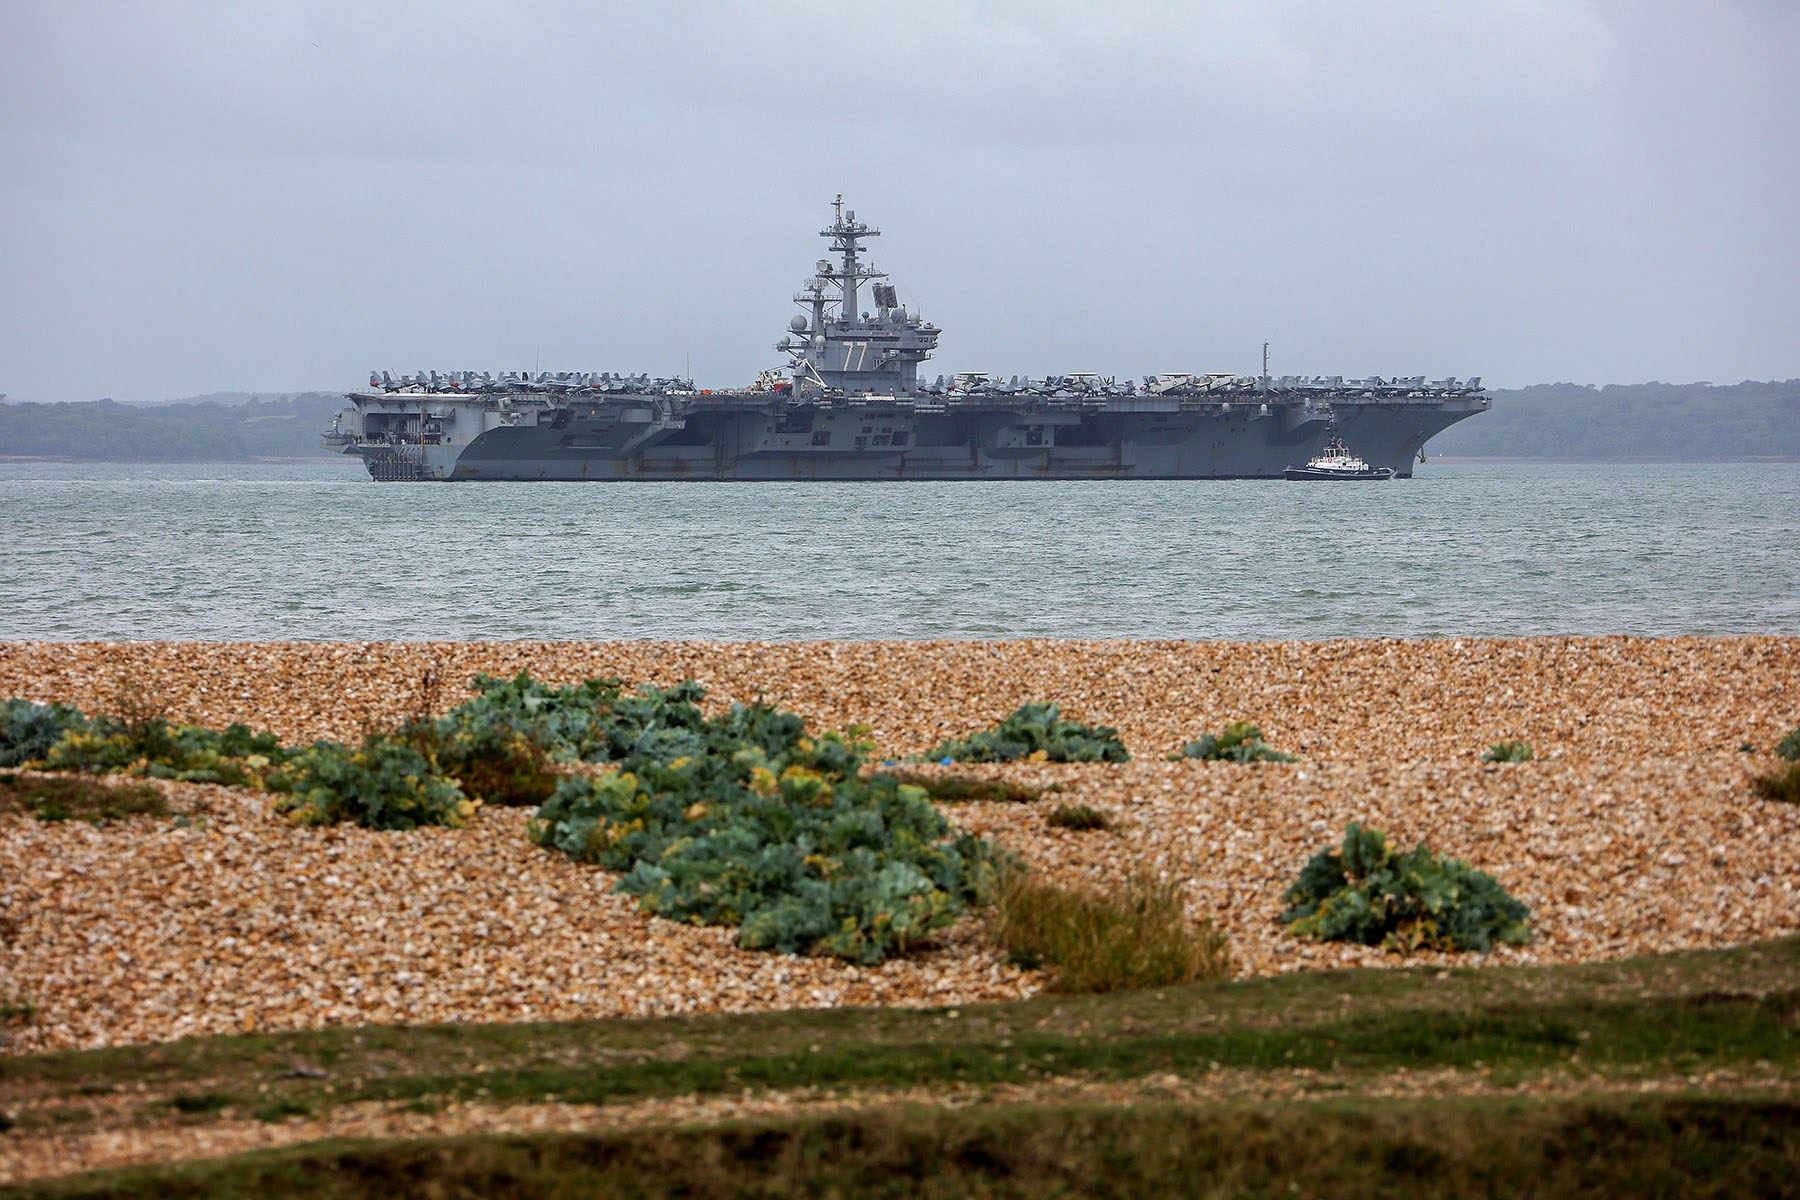 Aircraft carrier USS George HW Bush pays Portsmouth a visit 1.jpg